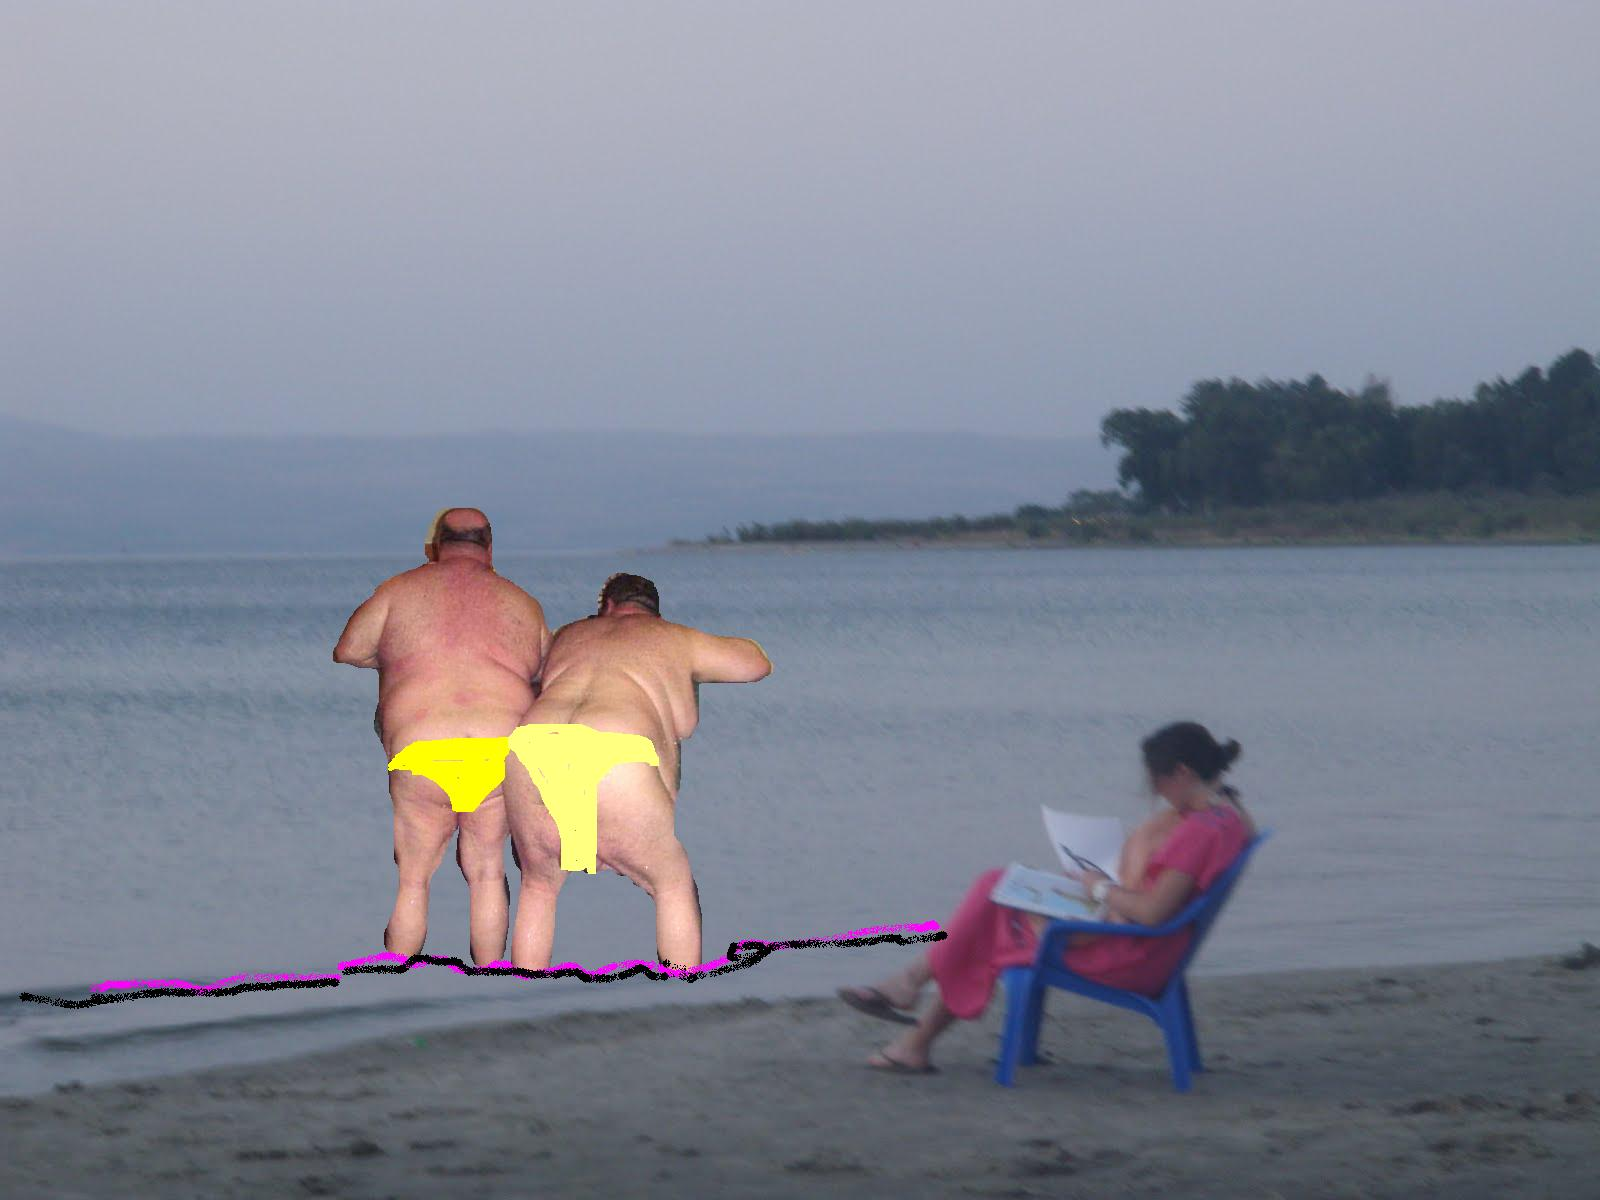 +BUS PLUNGE EXCLUSIVE: Two naked fat men wearing photoshopped speedos ...